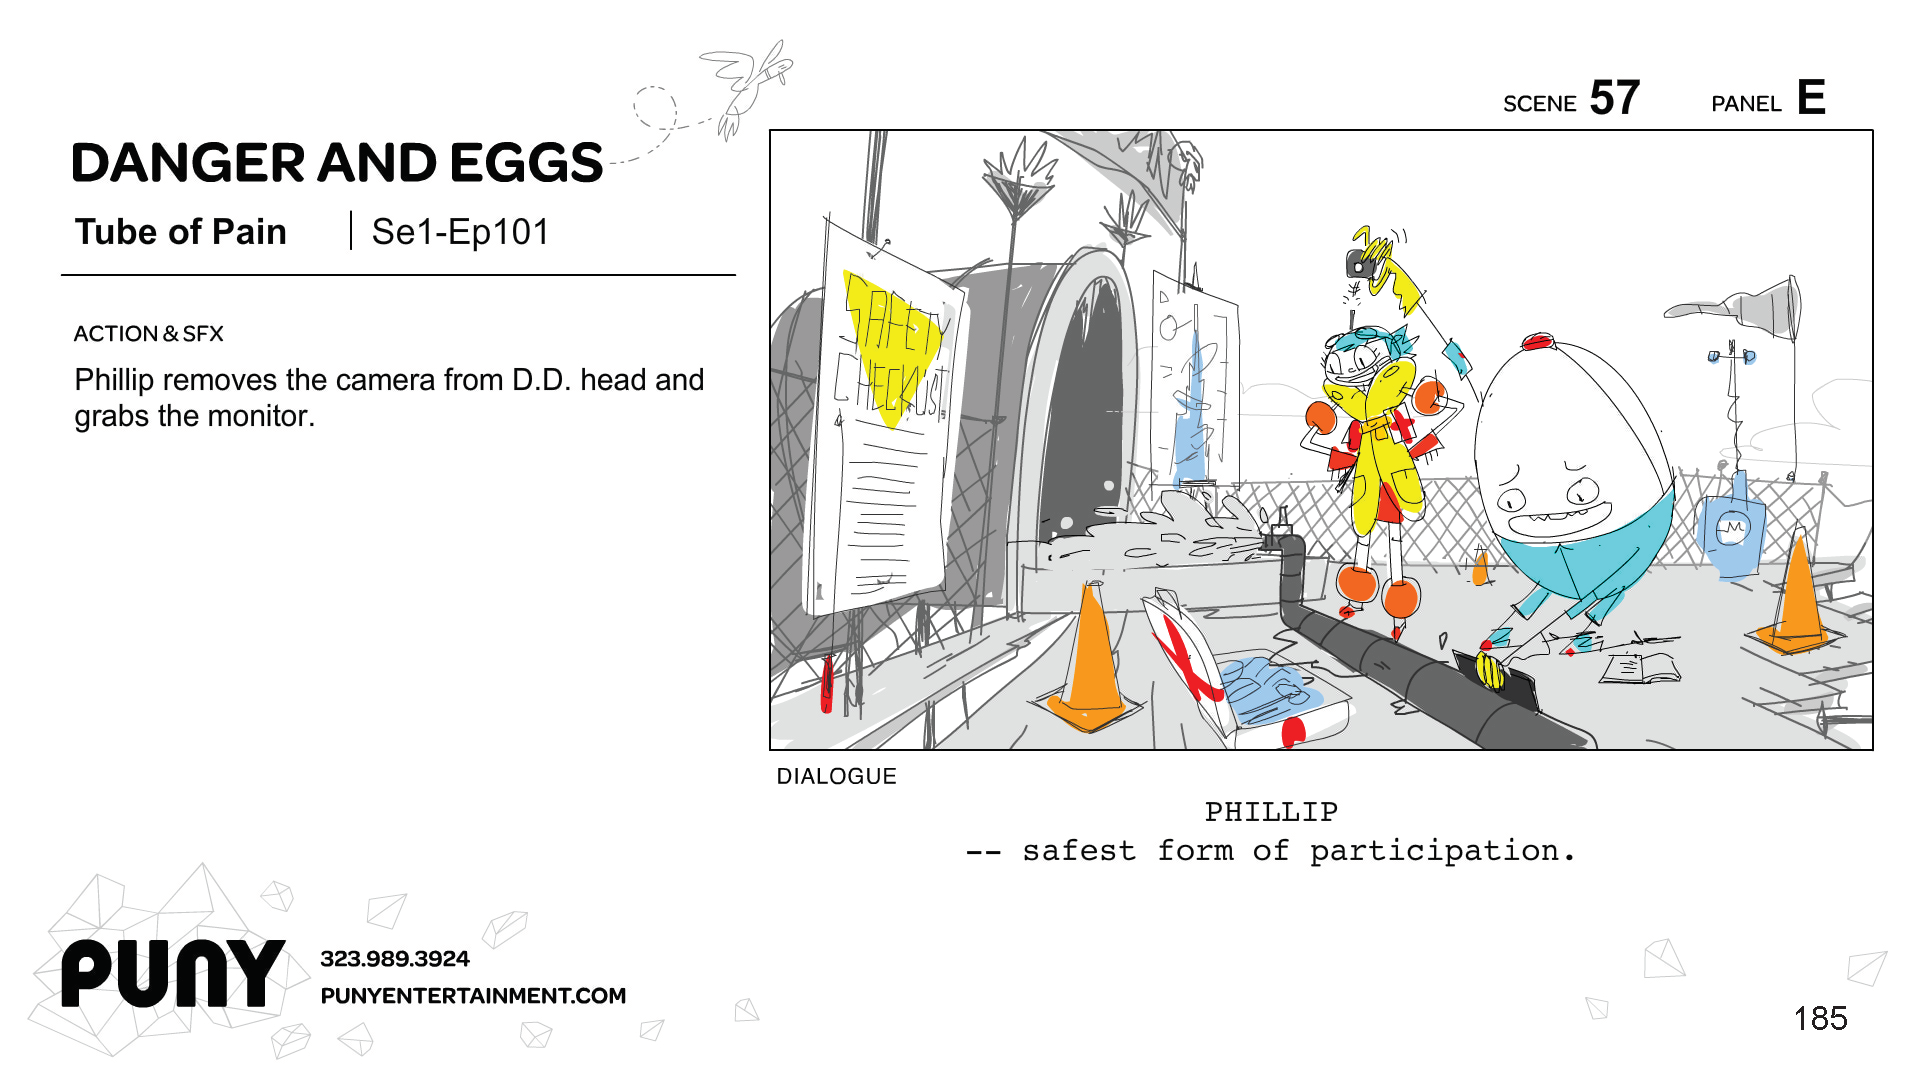 MikeOwens_STORYBOARDS_DangerAndEggs_Page_185.png